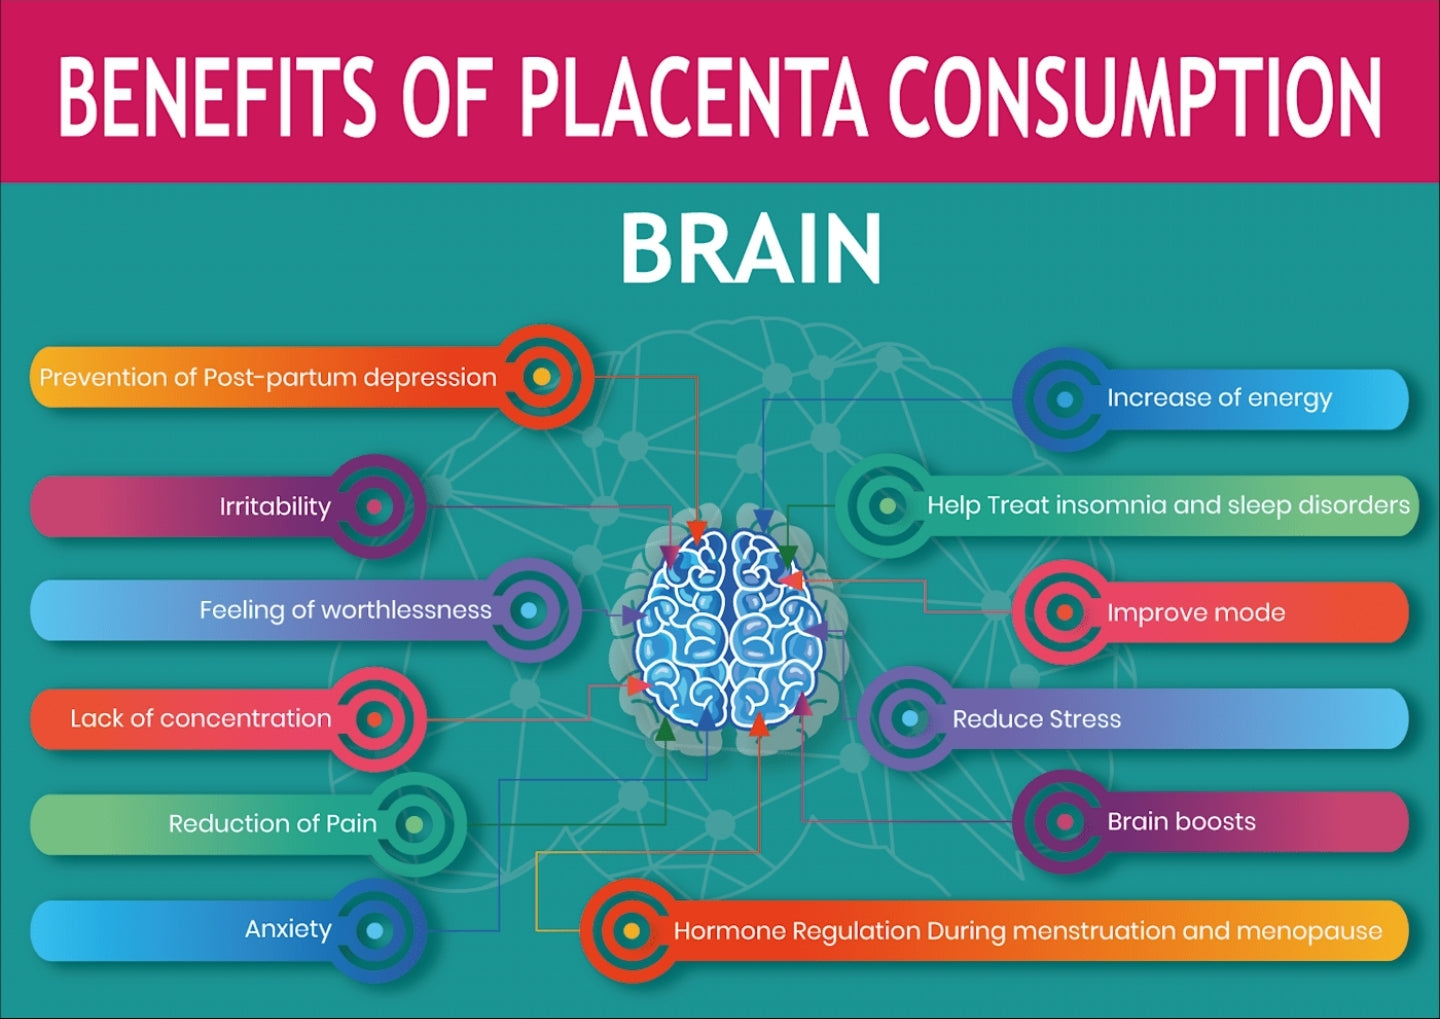 Benefits of placenta consumption to the brain